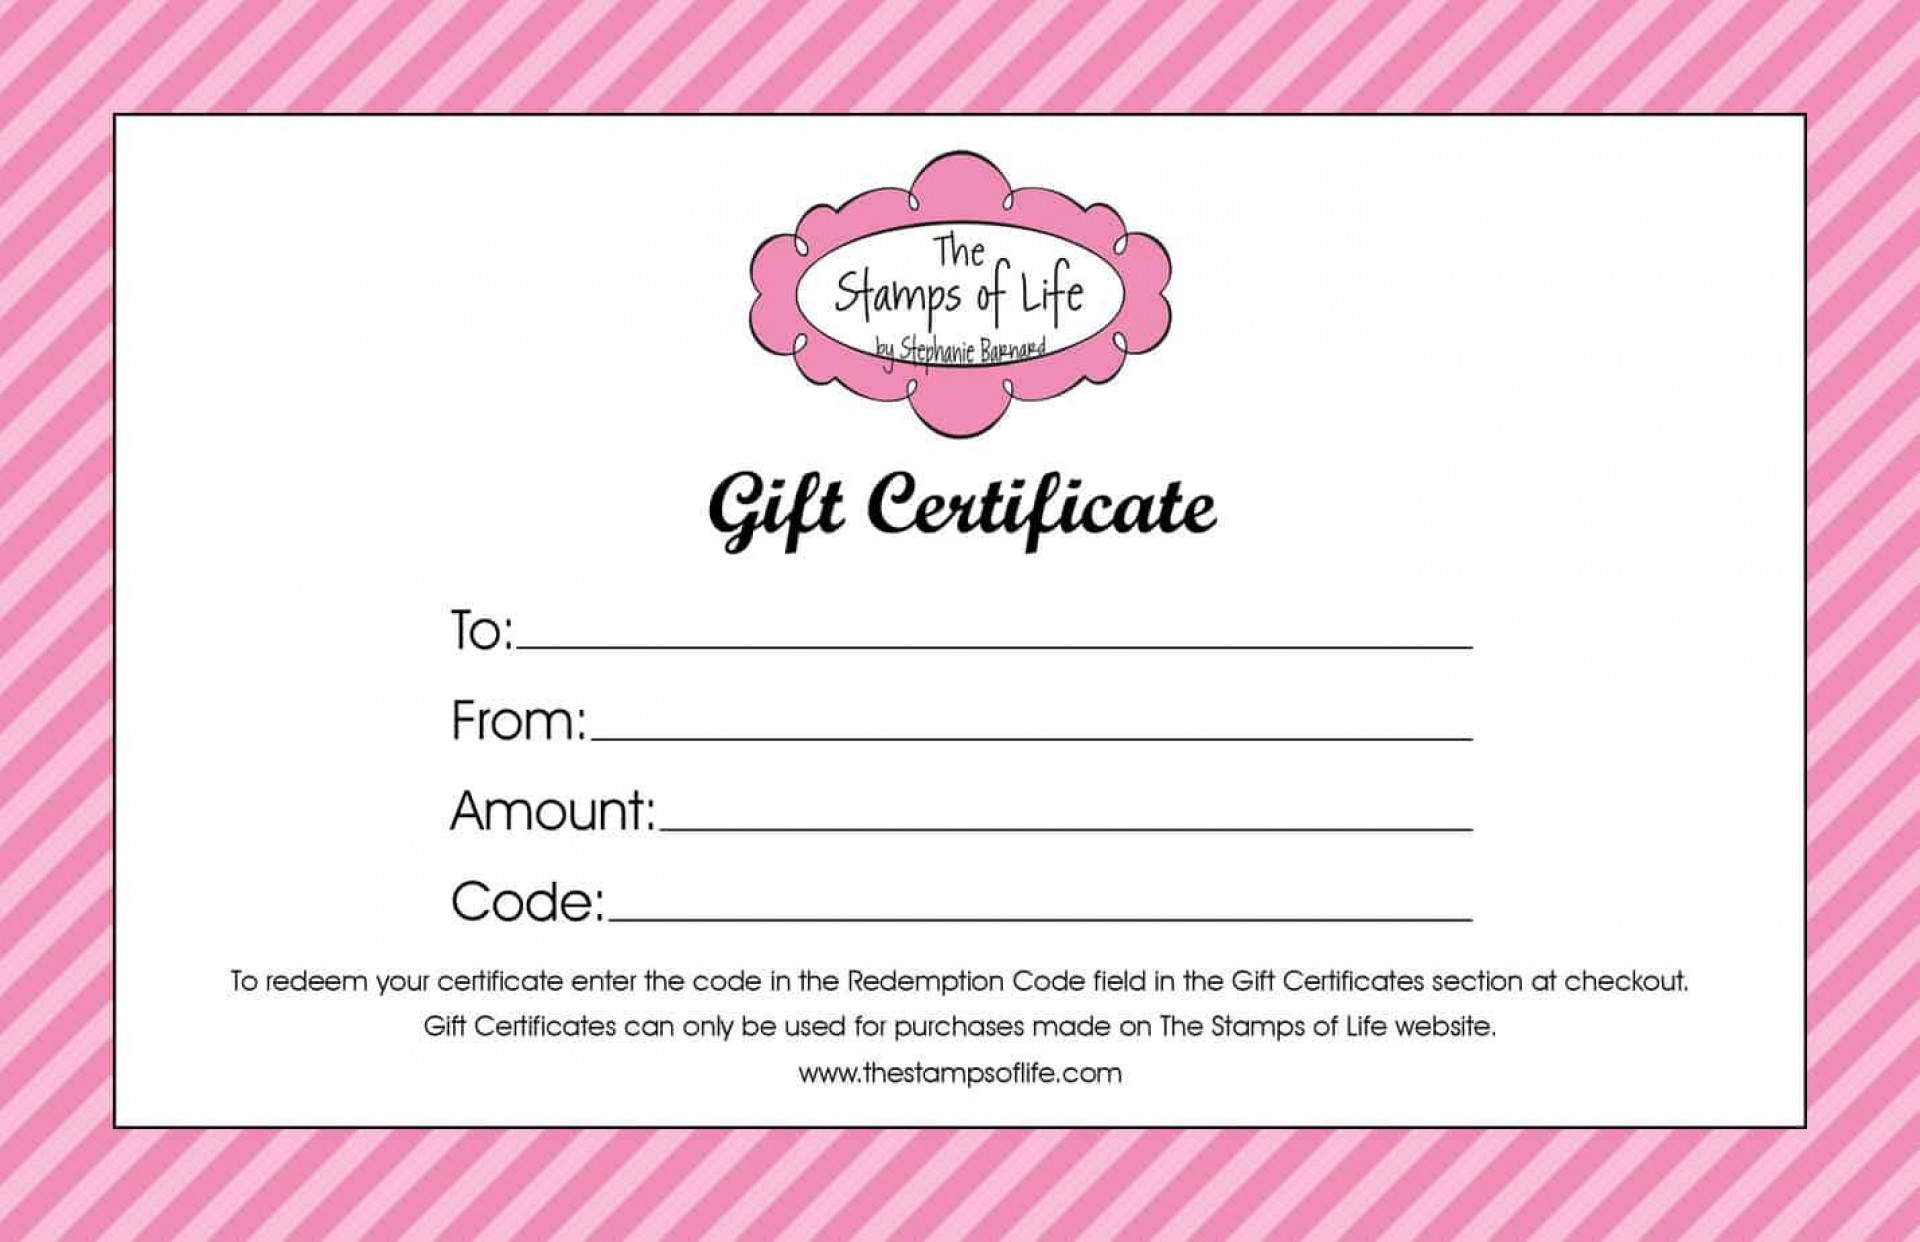 004 Shocking Blank Gift Certificate Template High Def  Free Printable Downloadable1920